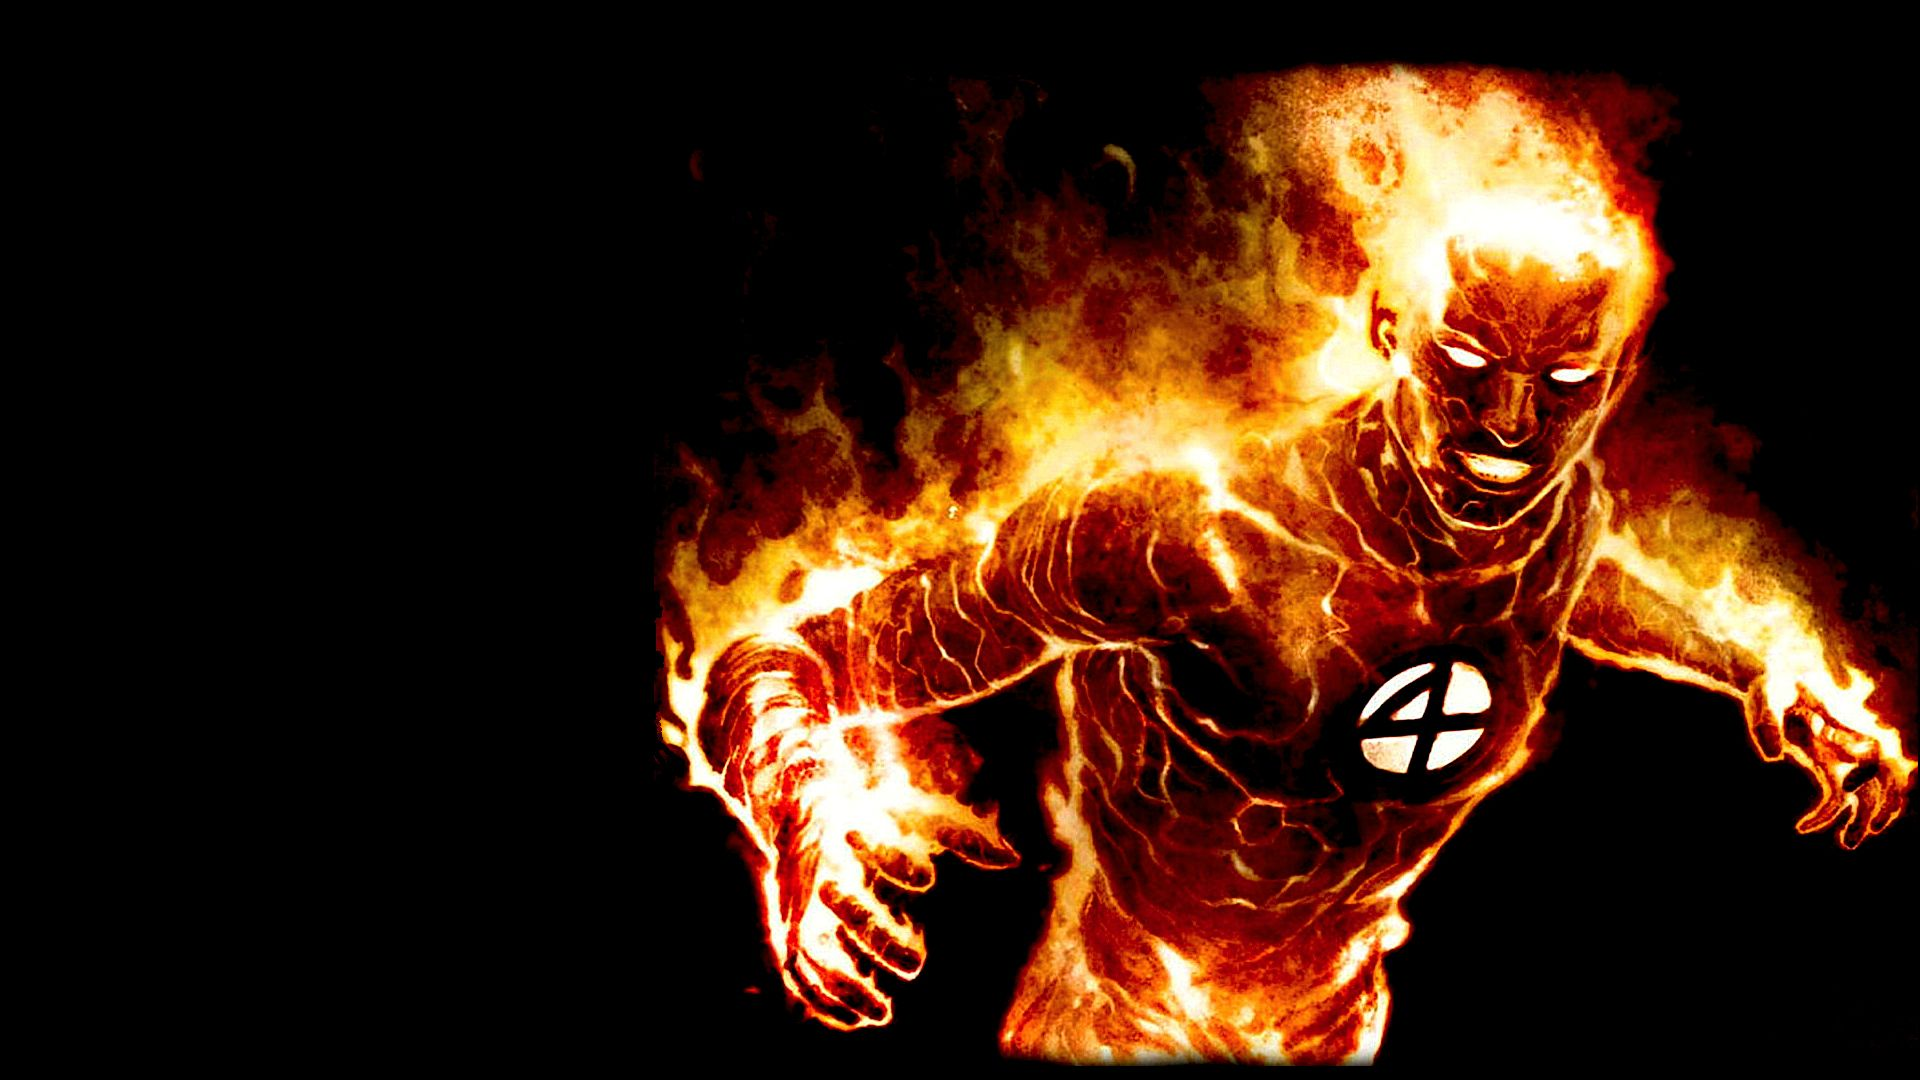 Human Torch Wallpaper 1920x1080